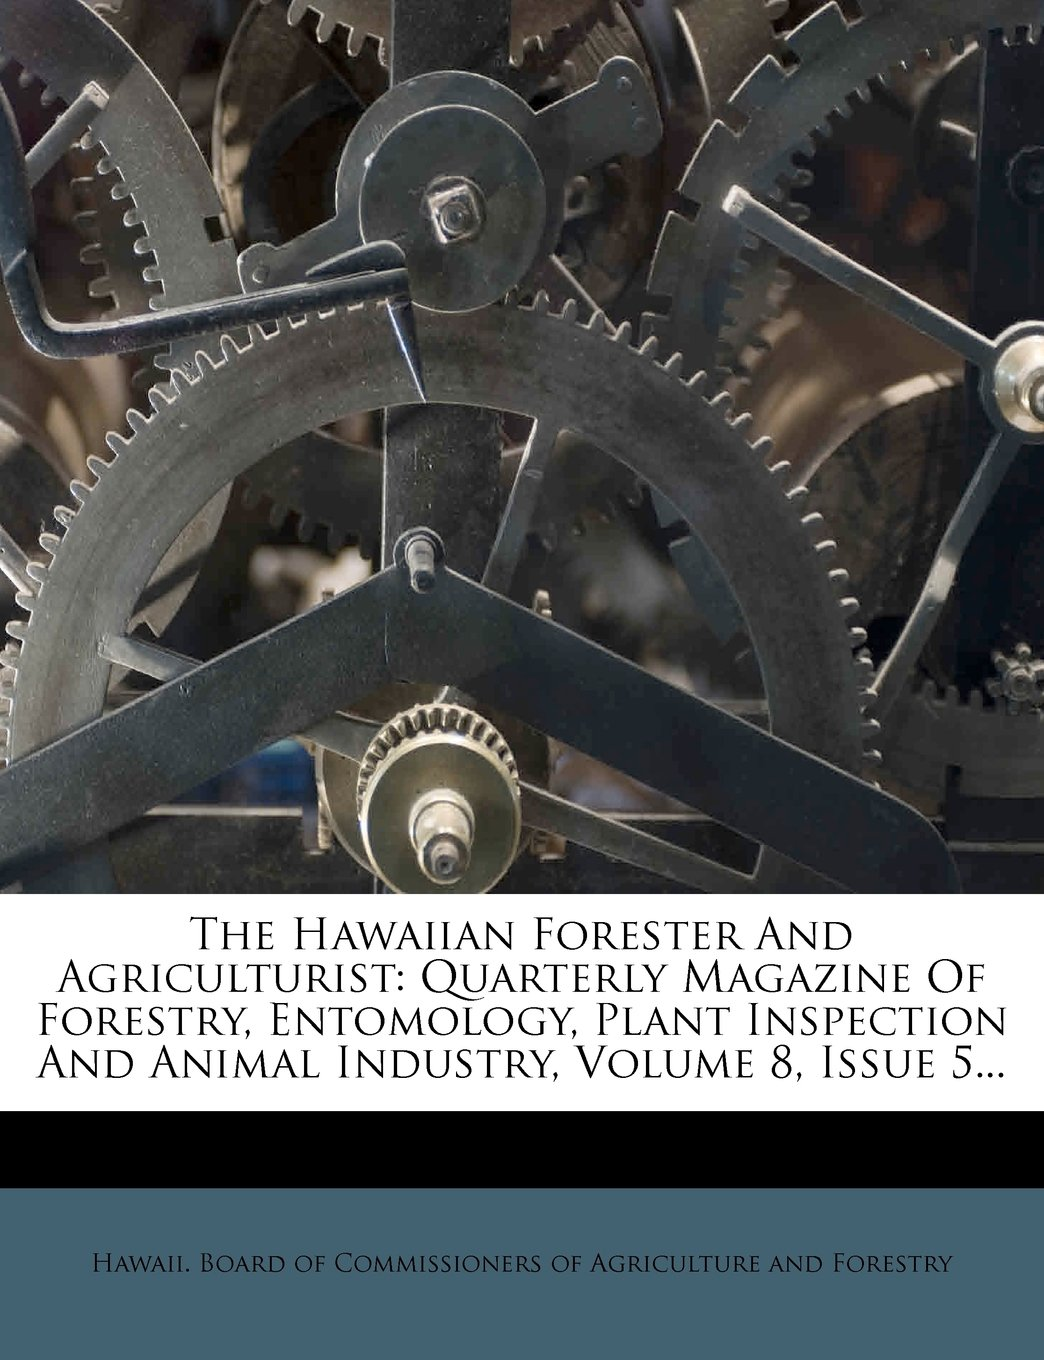 Download The Hawaiian Forester And Agriculturist: Quarterly Magazine Of Forestry, Entomology, Plant Inspection And Animal Industry, Volume 8, Issue 5... PDF